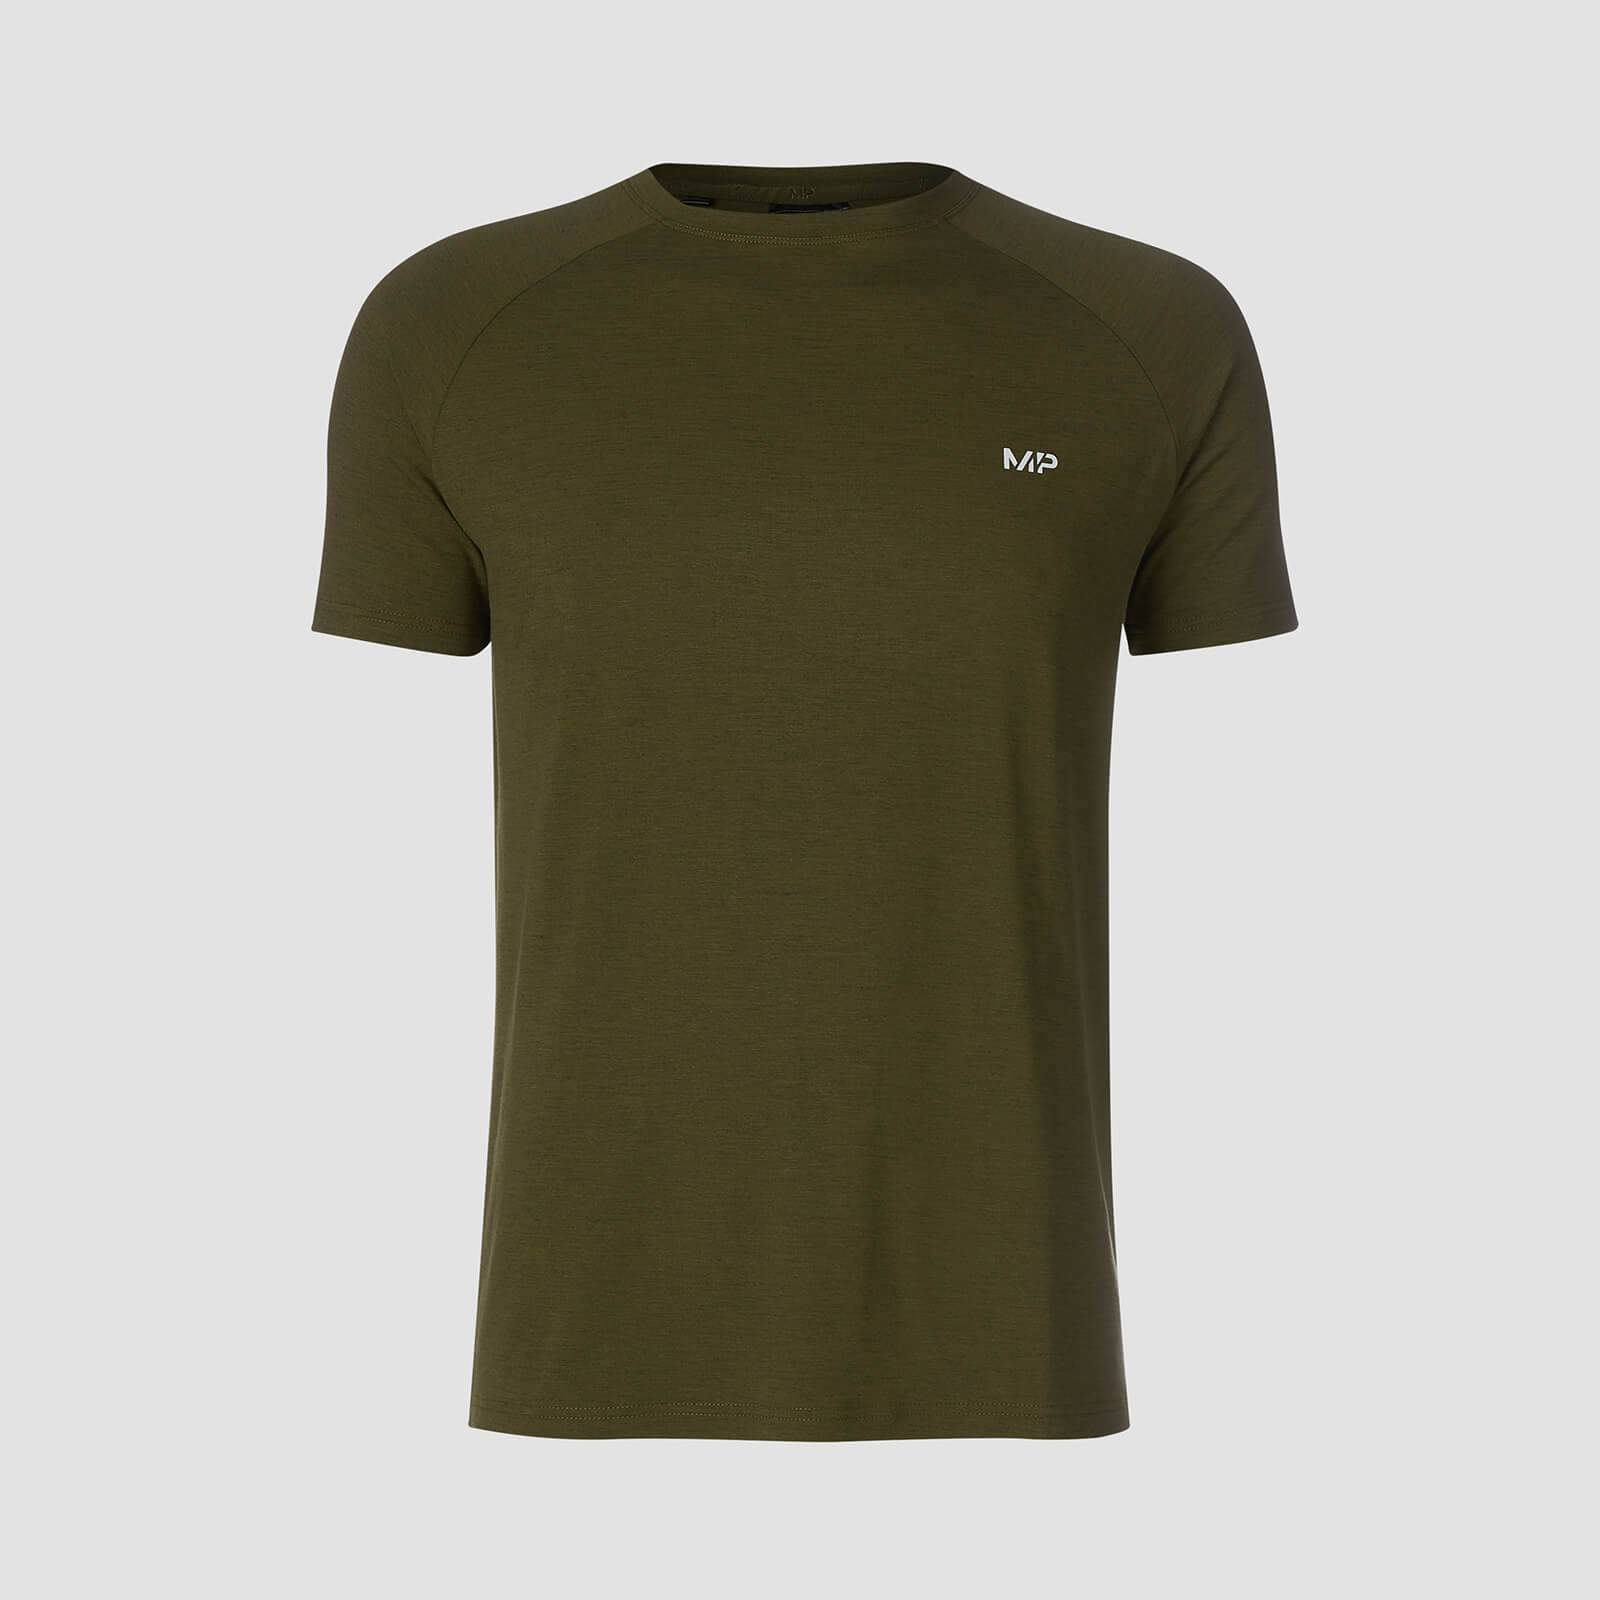 Myprotein T-shirt Performance Short Sleeve MP - Verde militare/Nero - XXL